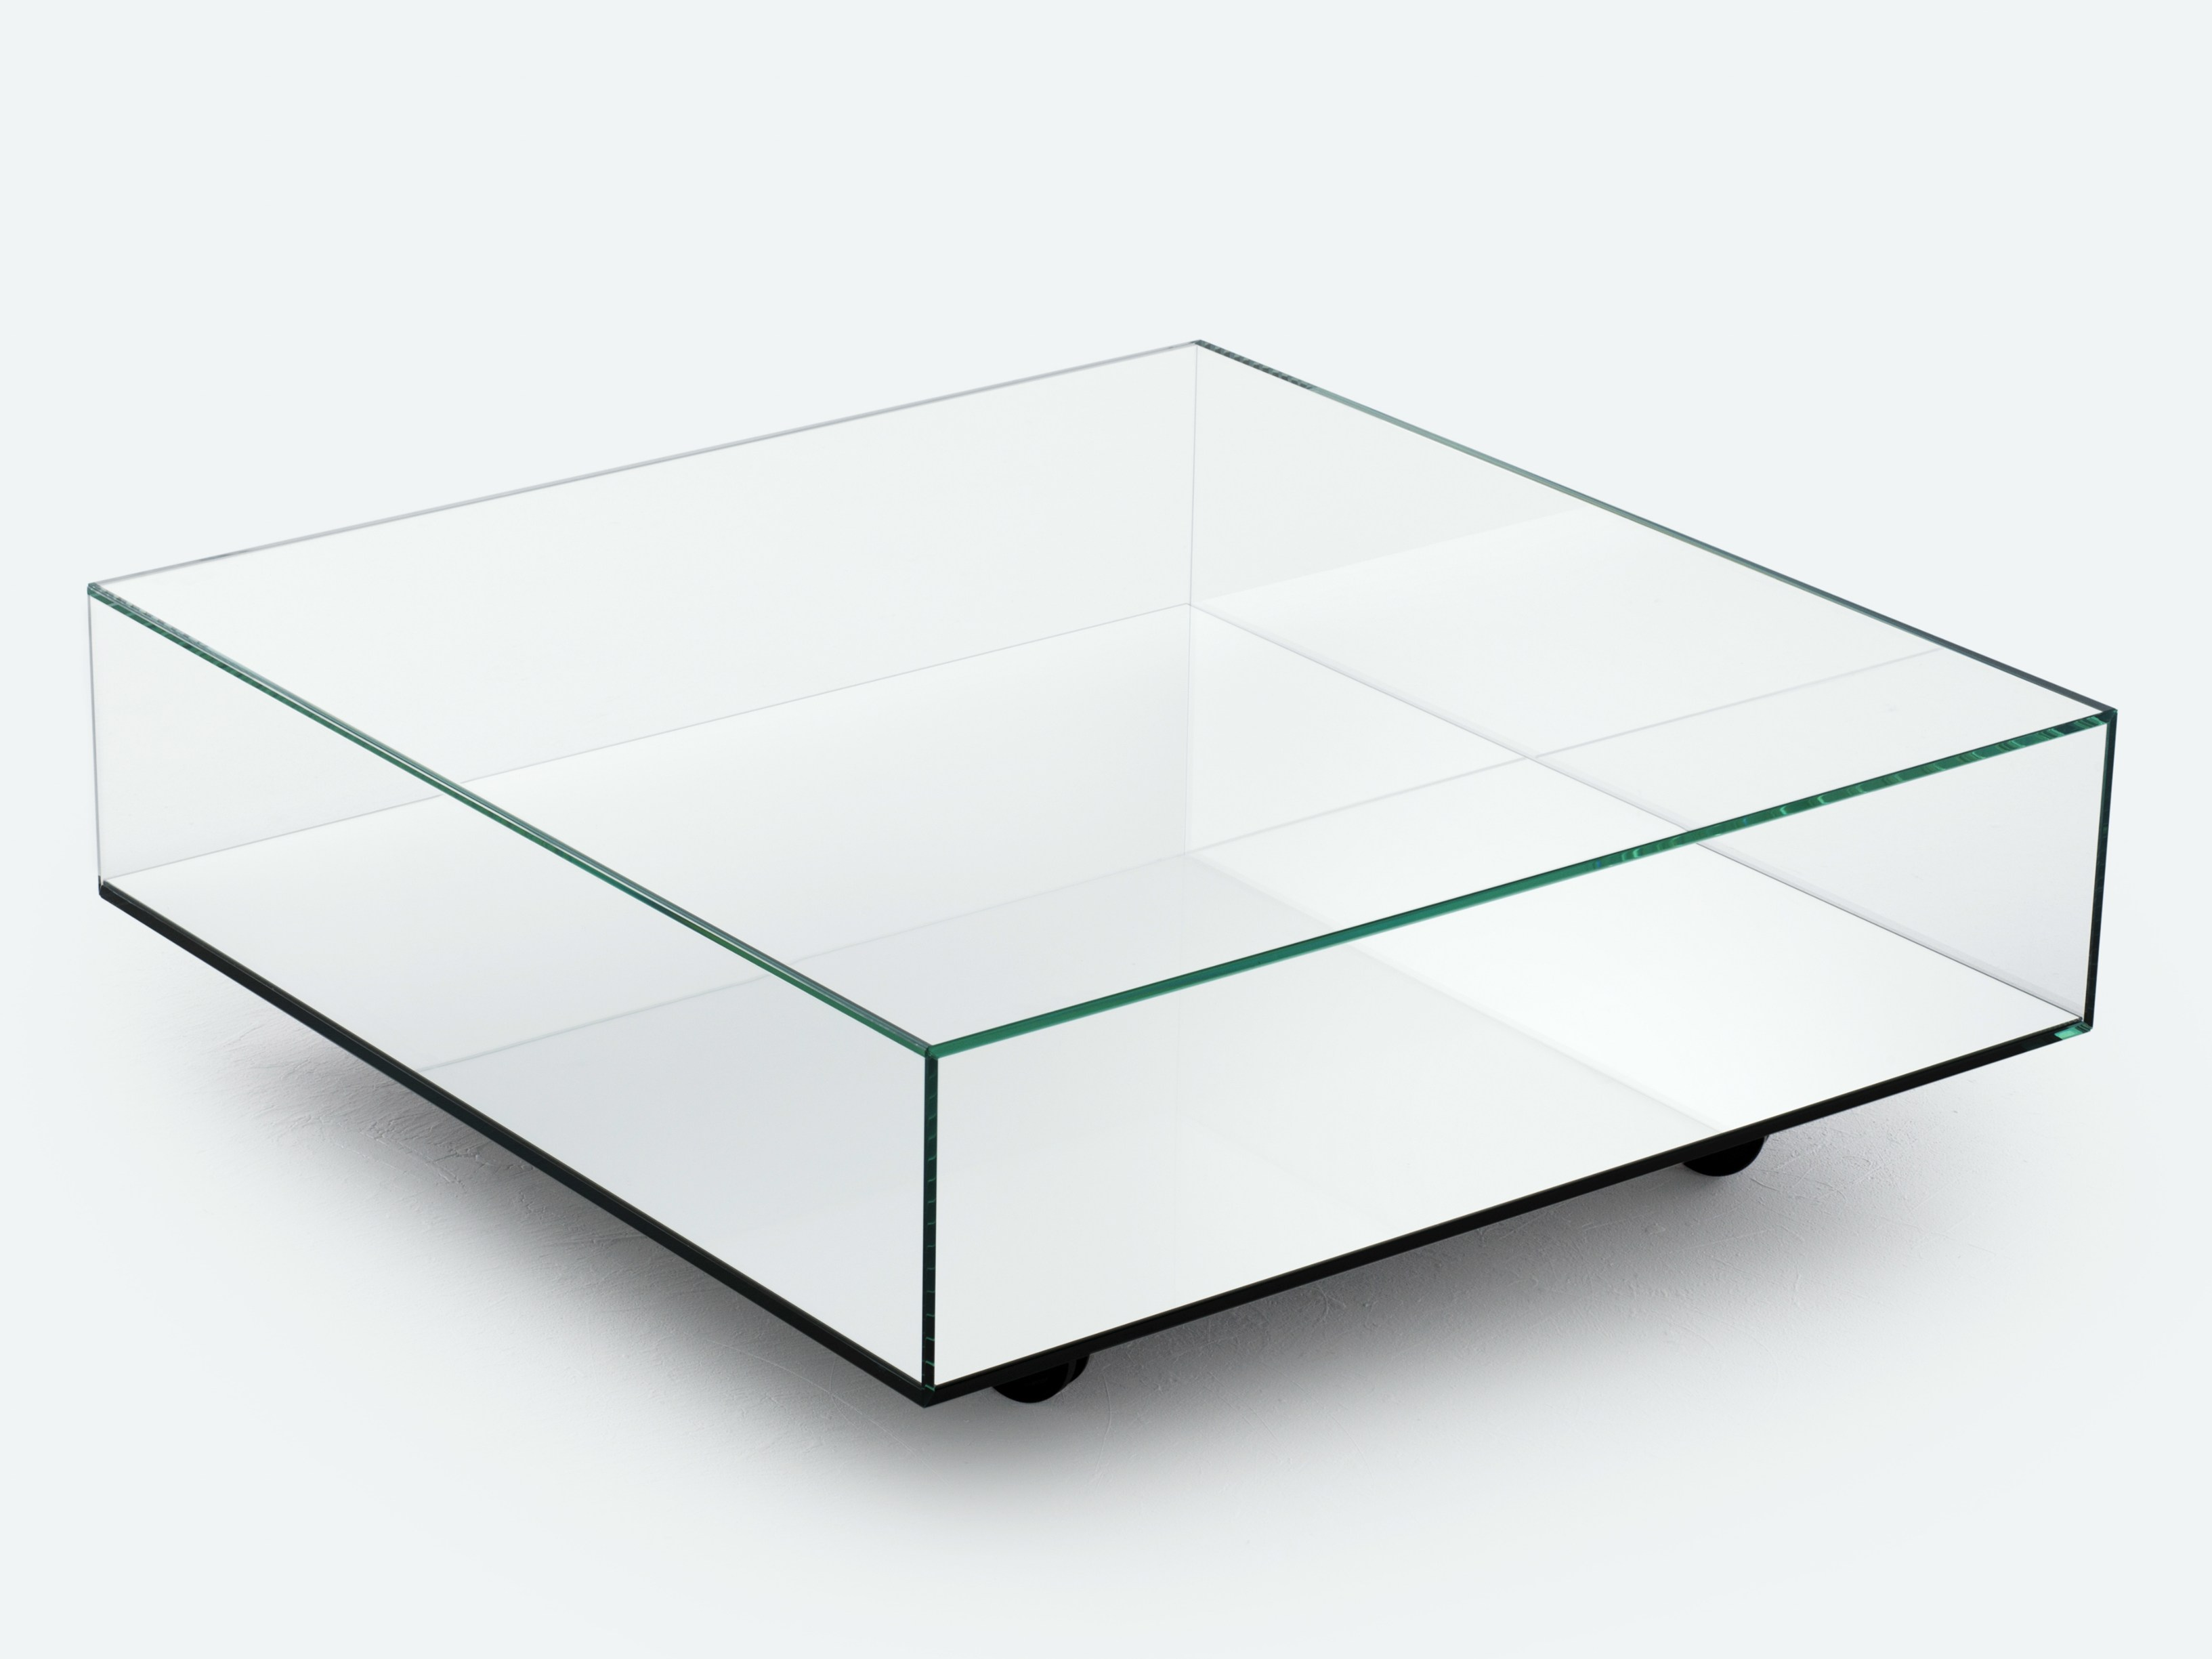 Oversized Coffee Table | Oversized Square Coffee Tables | Mirrored Coffee Table